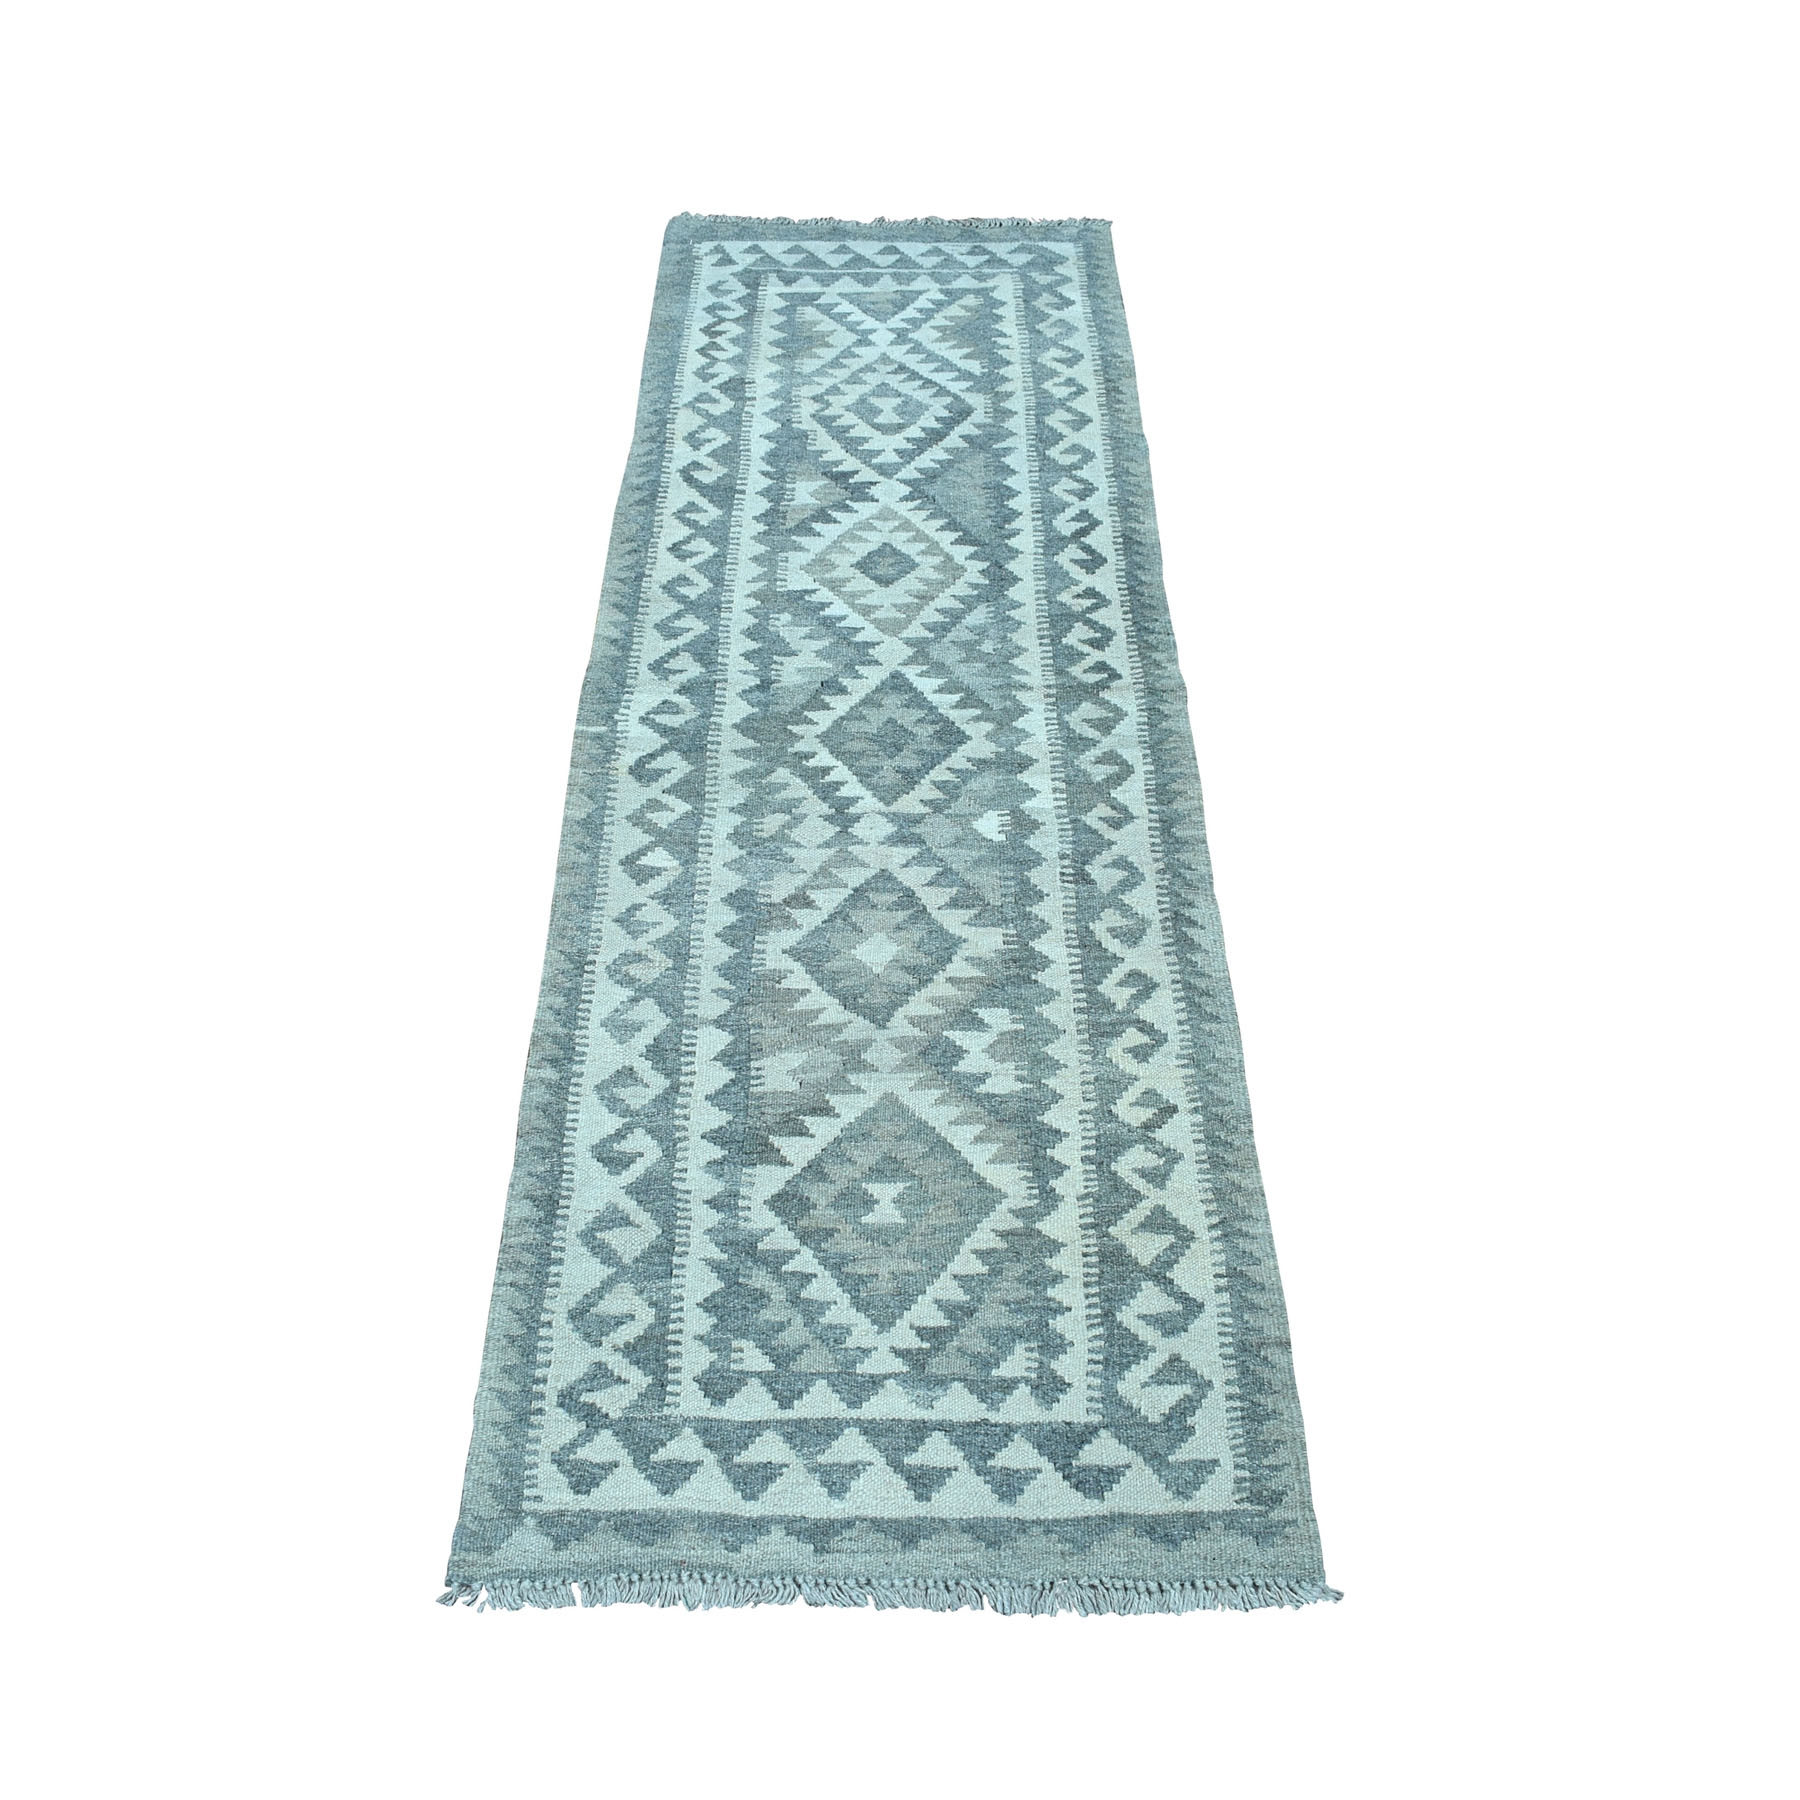 """2'2""""X6'5"""" Undyed Natural Wool Afghan Kilim Reversible Hand Woven Runner Oriental Rug moaecd6e"""